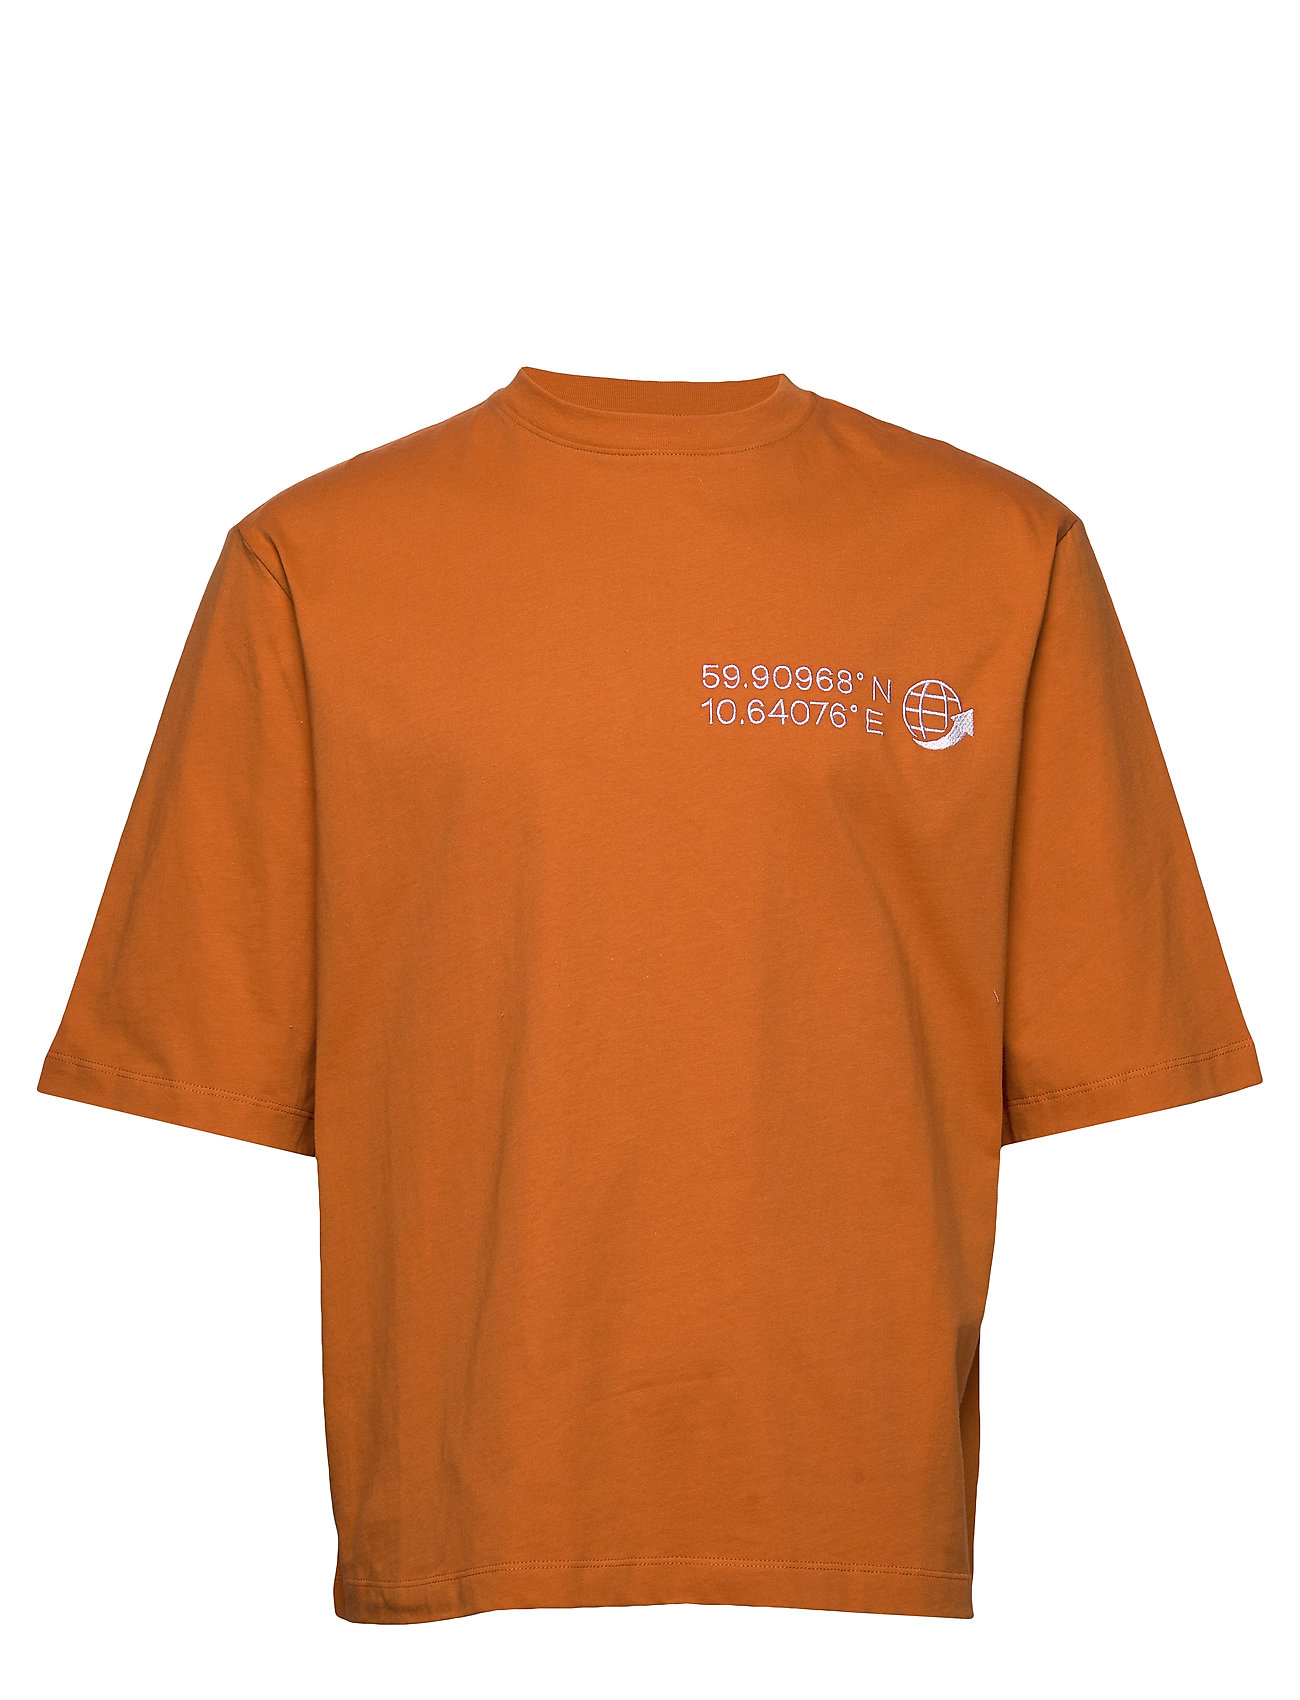 Image of Suse Tee T-shirt Orange HOLZWEILER (3350779527)